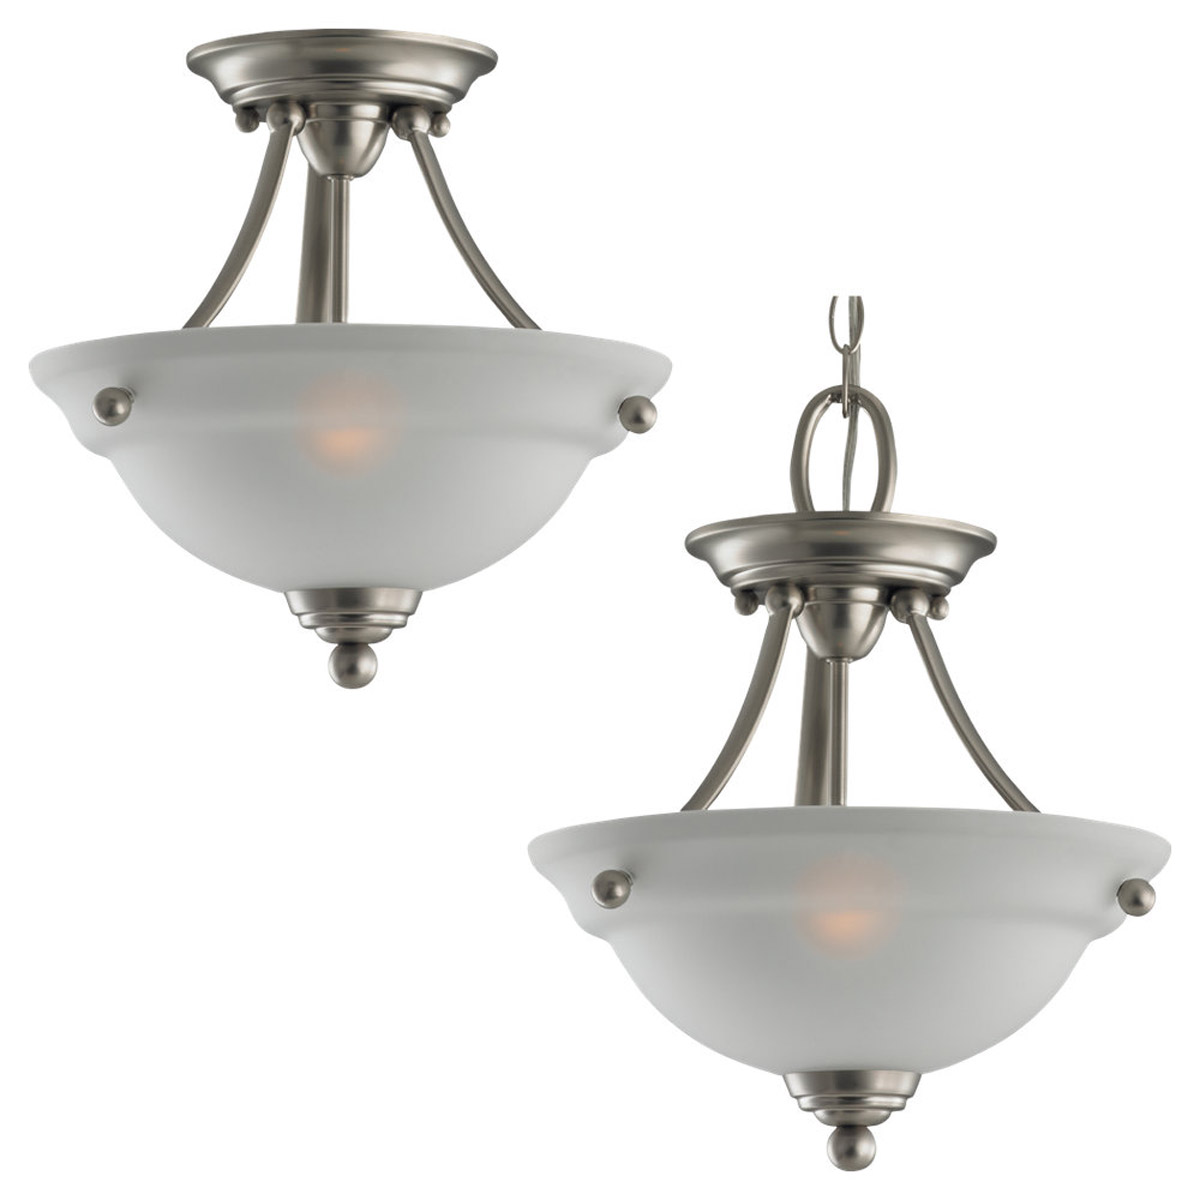 Sea Gull Lighting Wheaton 2 Light Semi-Flush Mount in Brushed Nickel 77625-962